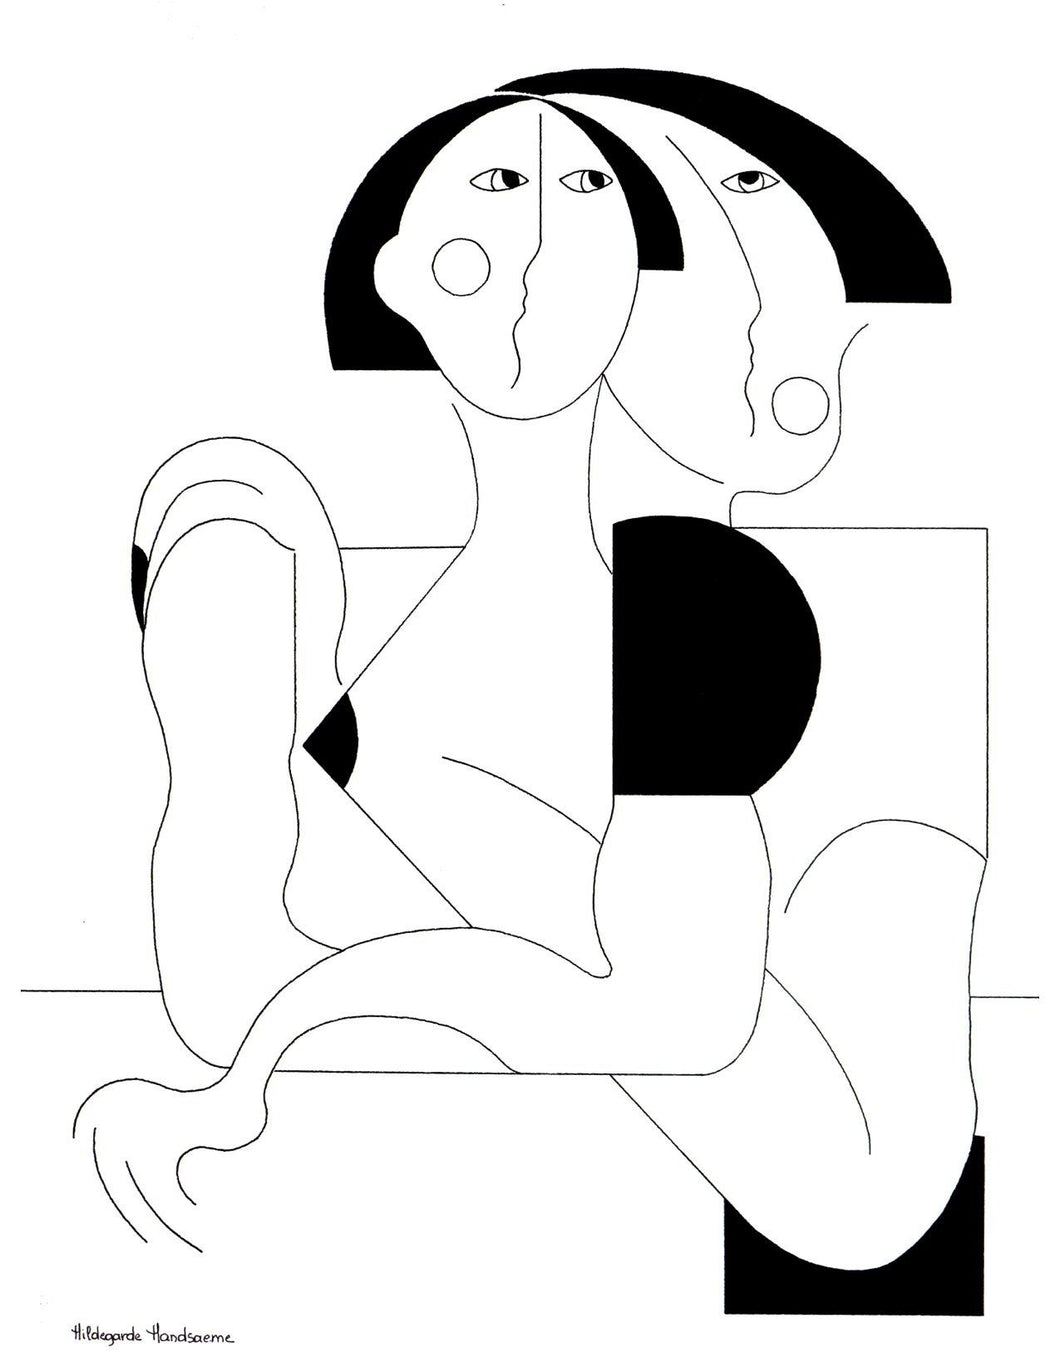 Love and Protection by Hildegarde Handsaeme, Drawing at Art Acacia Gallery & Advisory